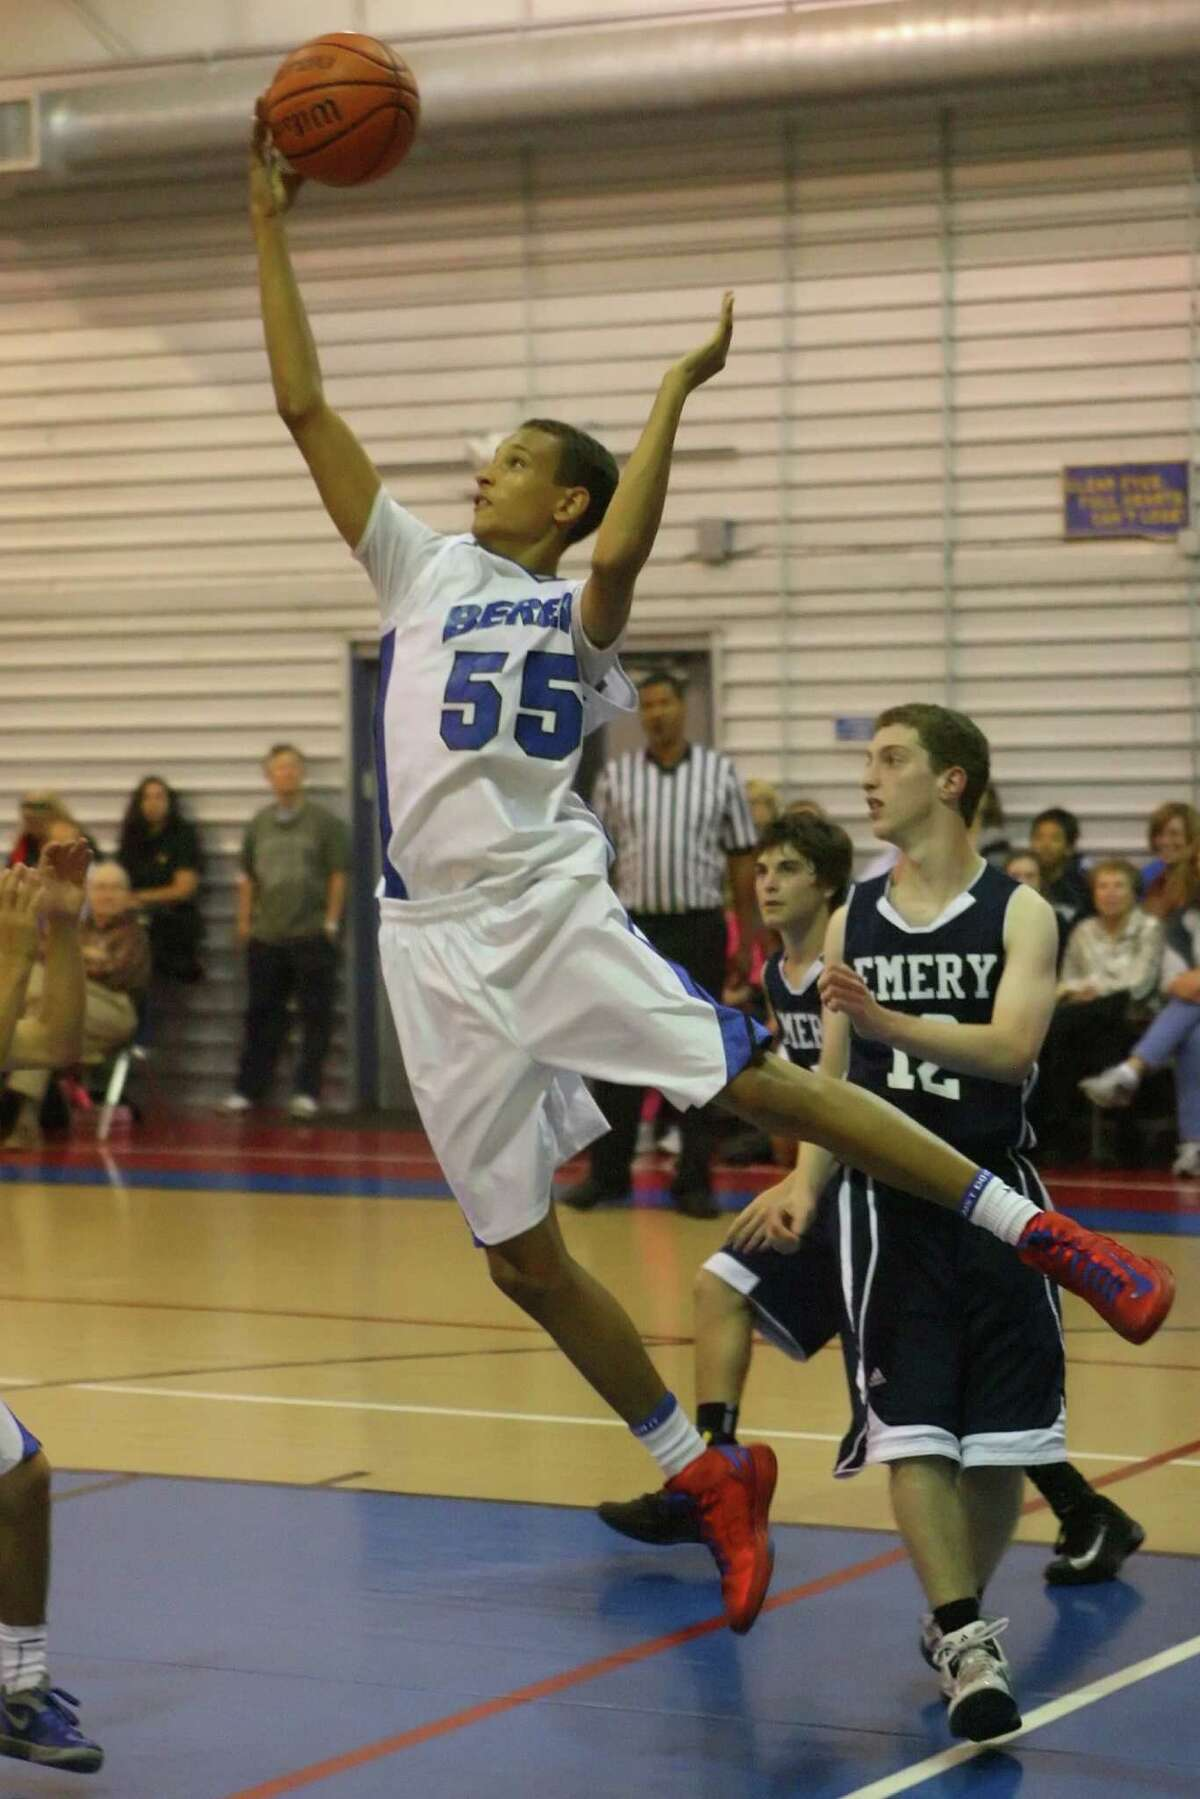 Drayton Ratcliff snags the rebound to keep the ball in play Tuesday night during the Emery game.